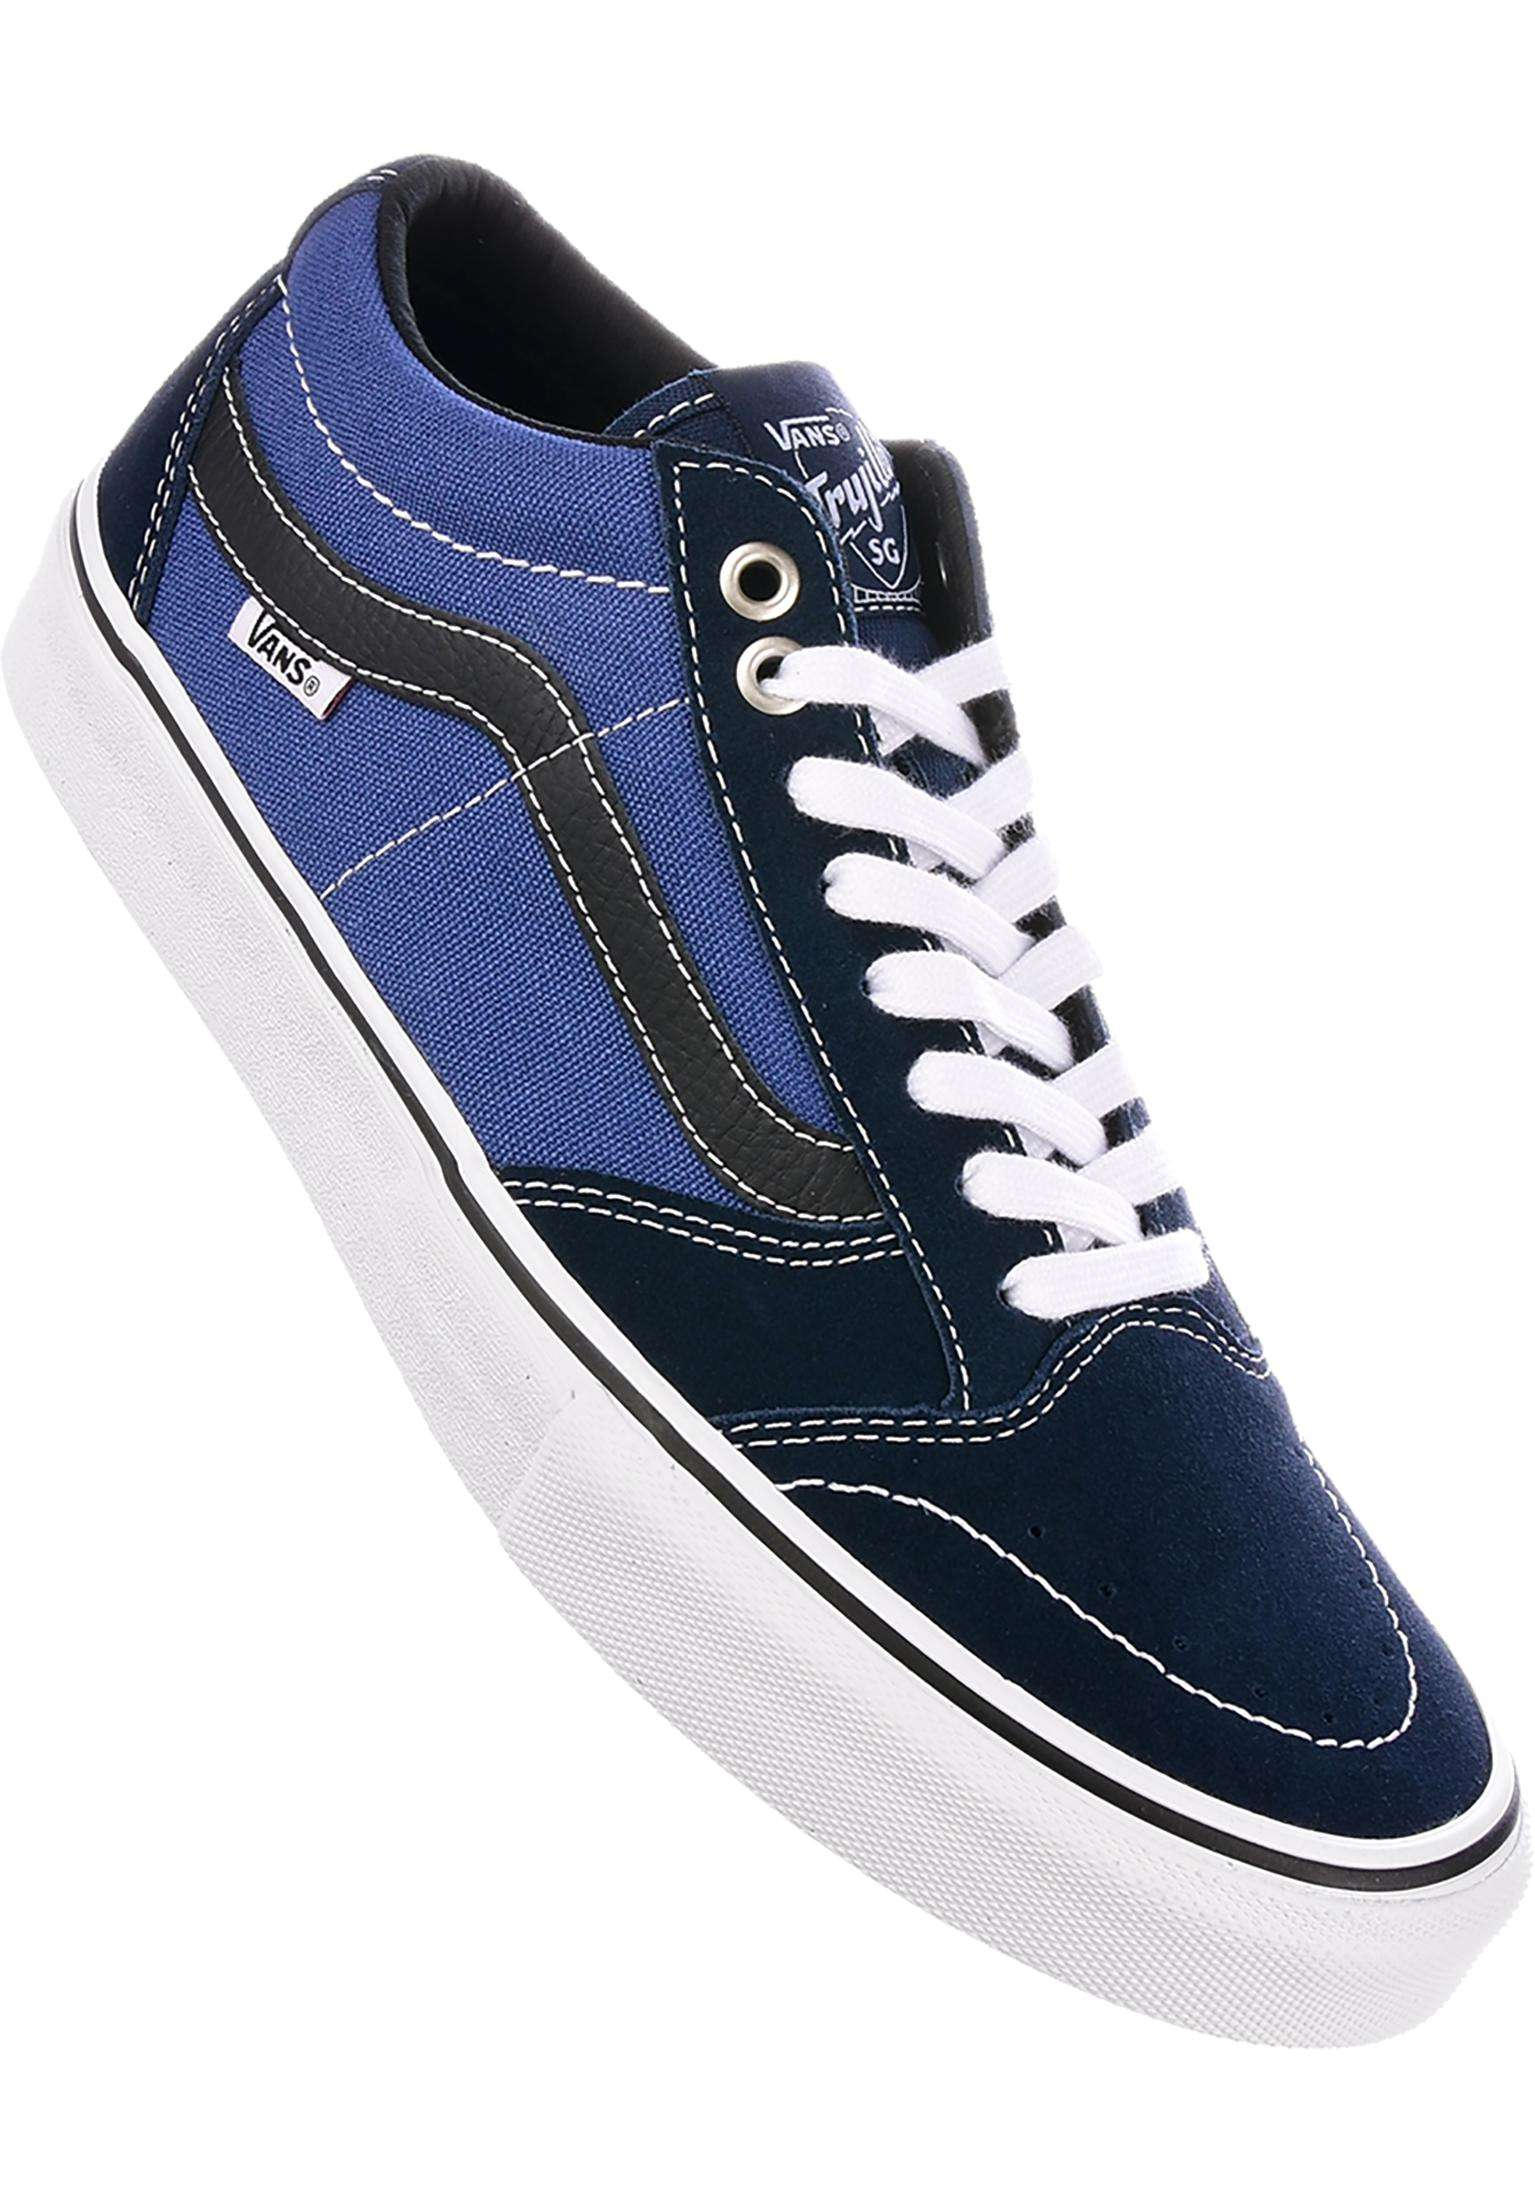 TNT SG Vans All Shoes in dressblues-navy for Men  7e07e7144